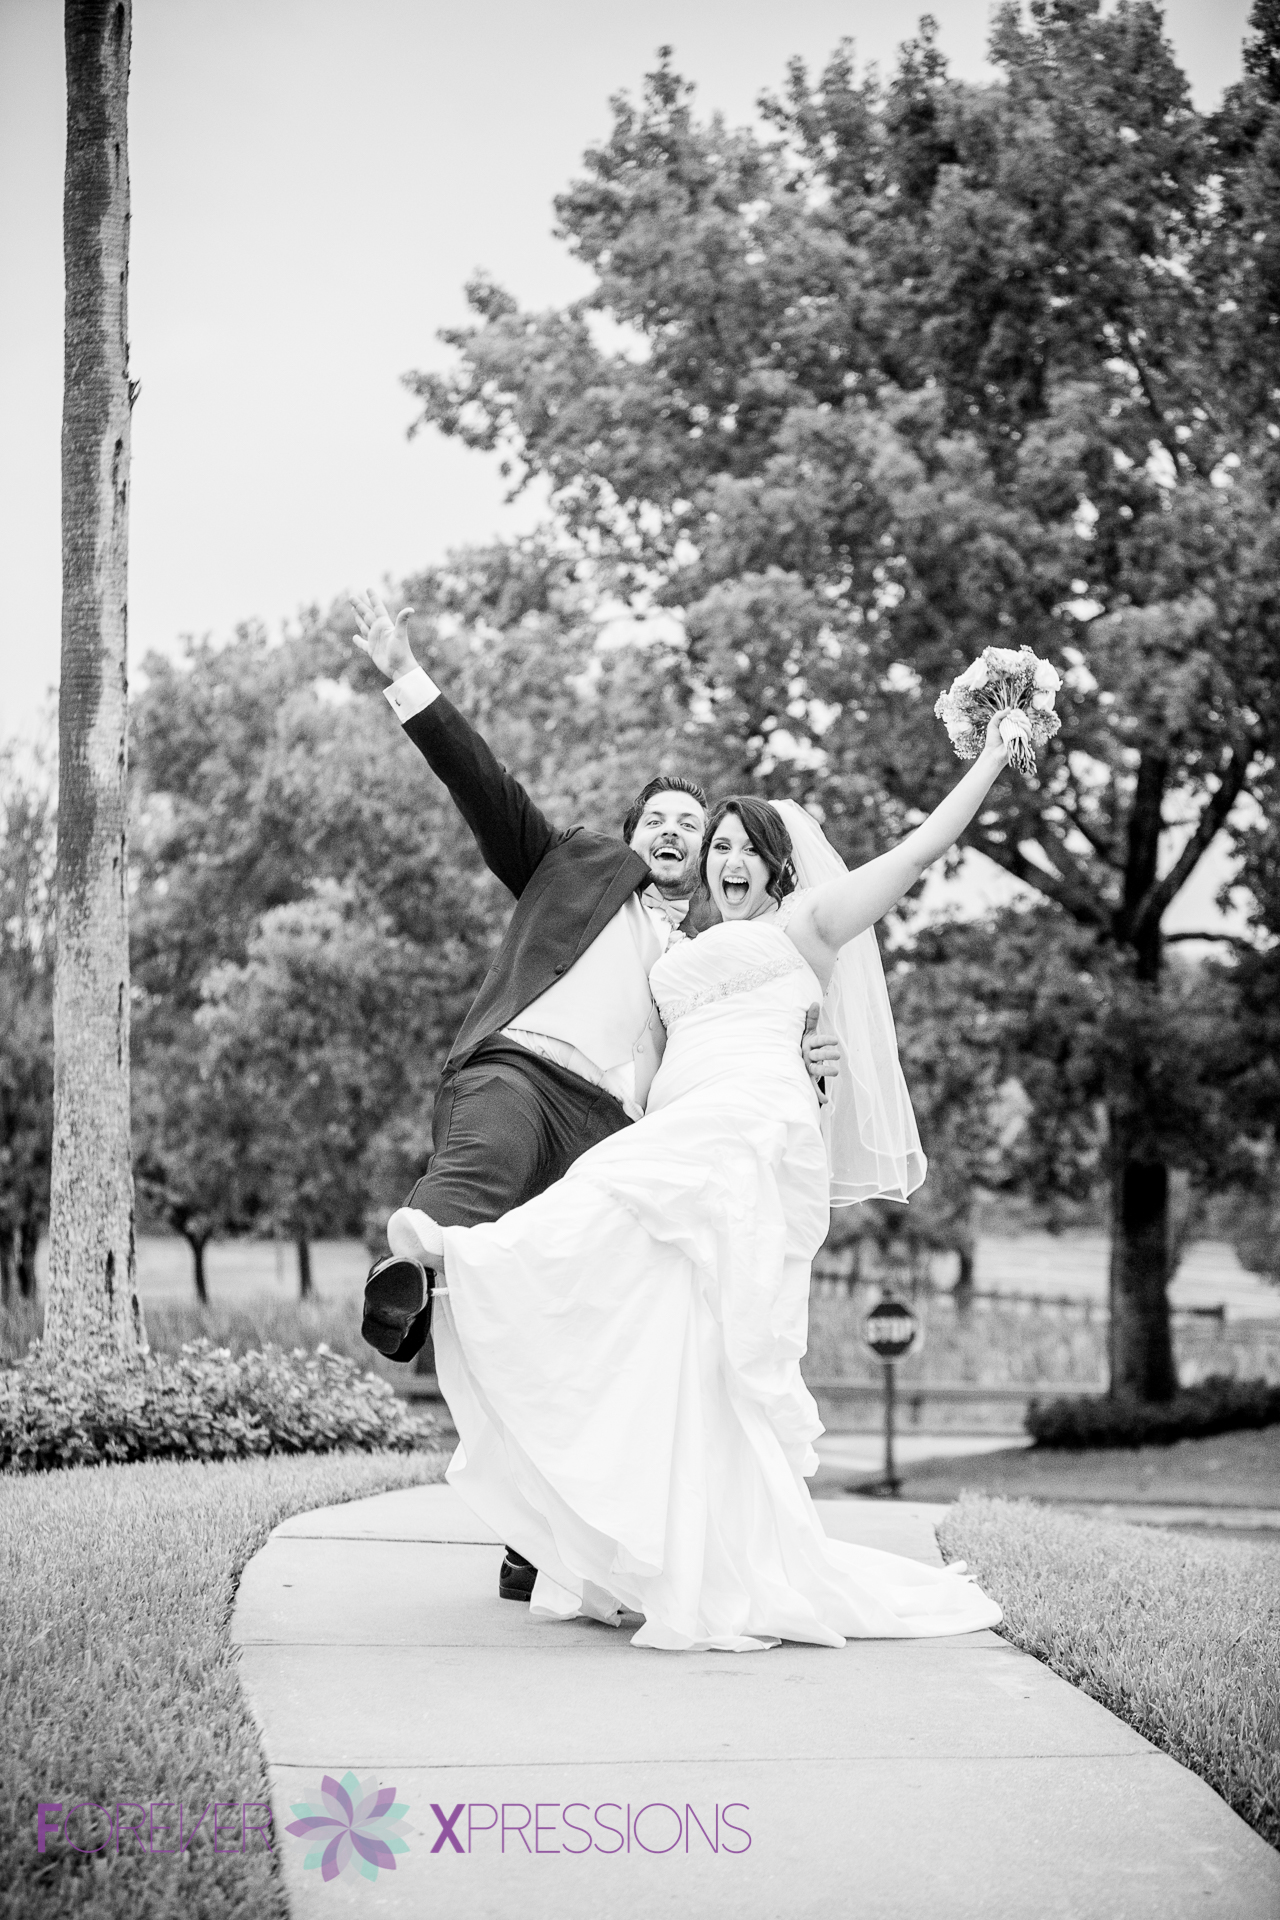 Forever_Xpressions_Wedding_Photography_Monteverde_Bella_Collina-0512